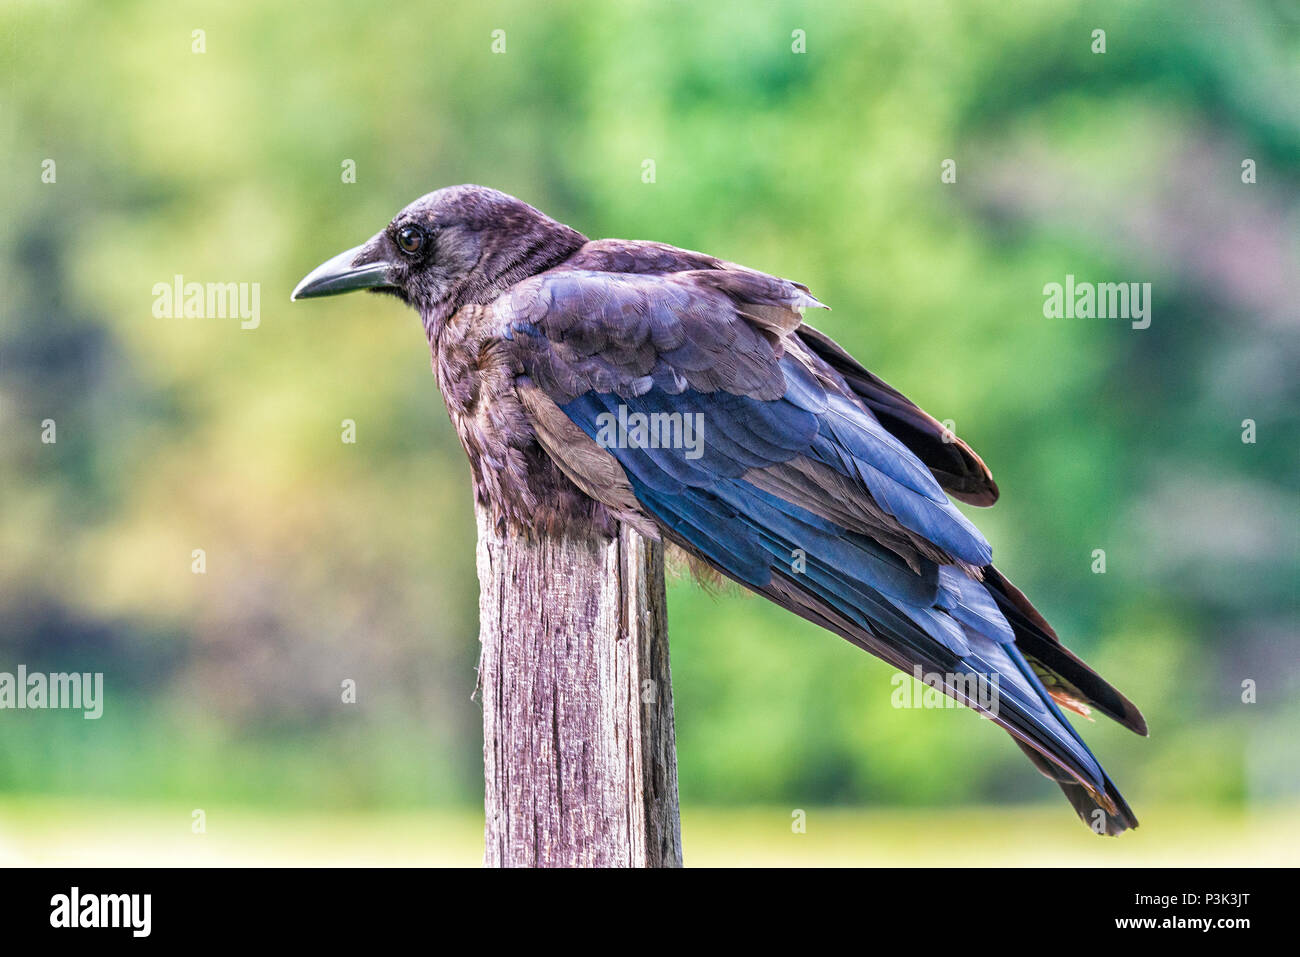 Horizontal close-up shot of a rumpled raven on a fence post with an out of focus background. - Stock Image